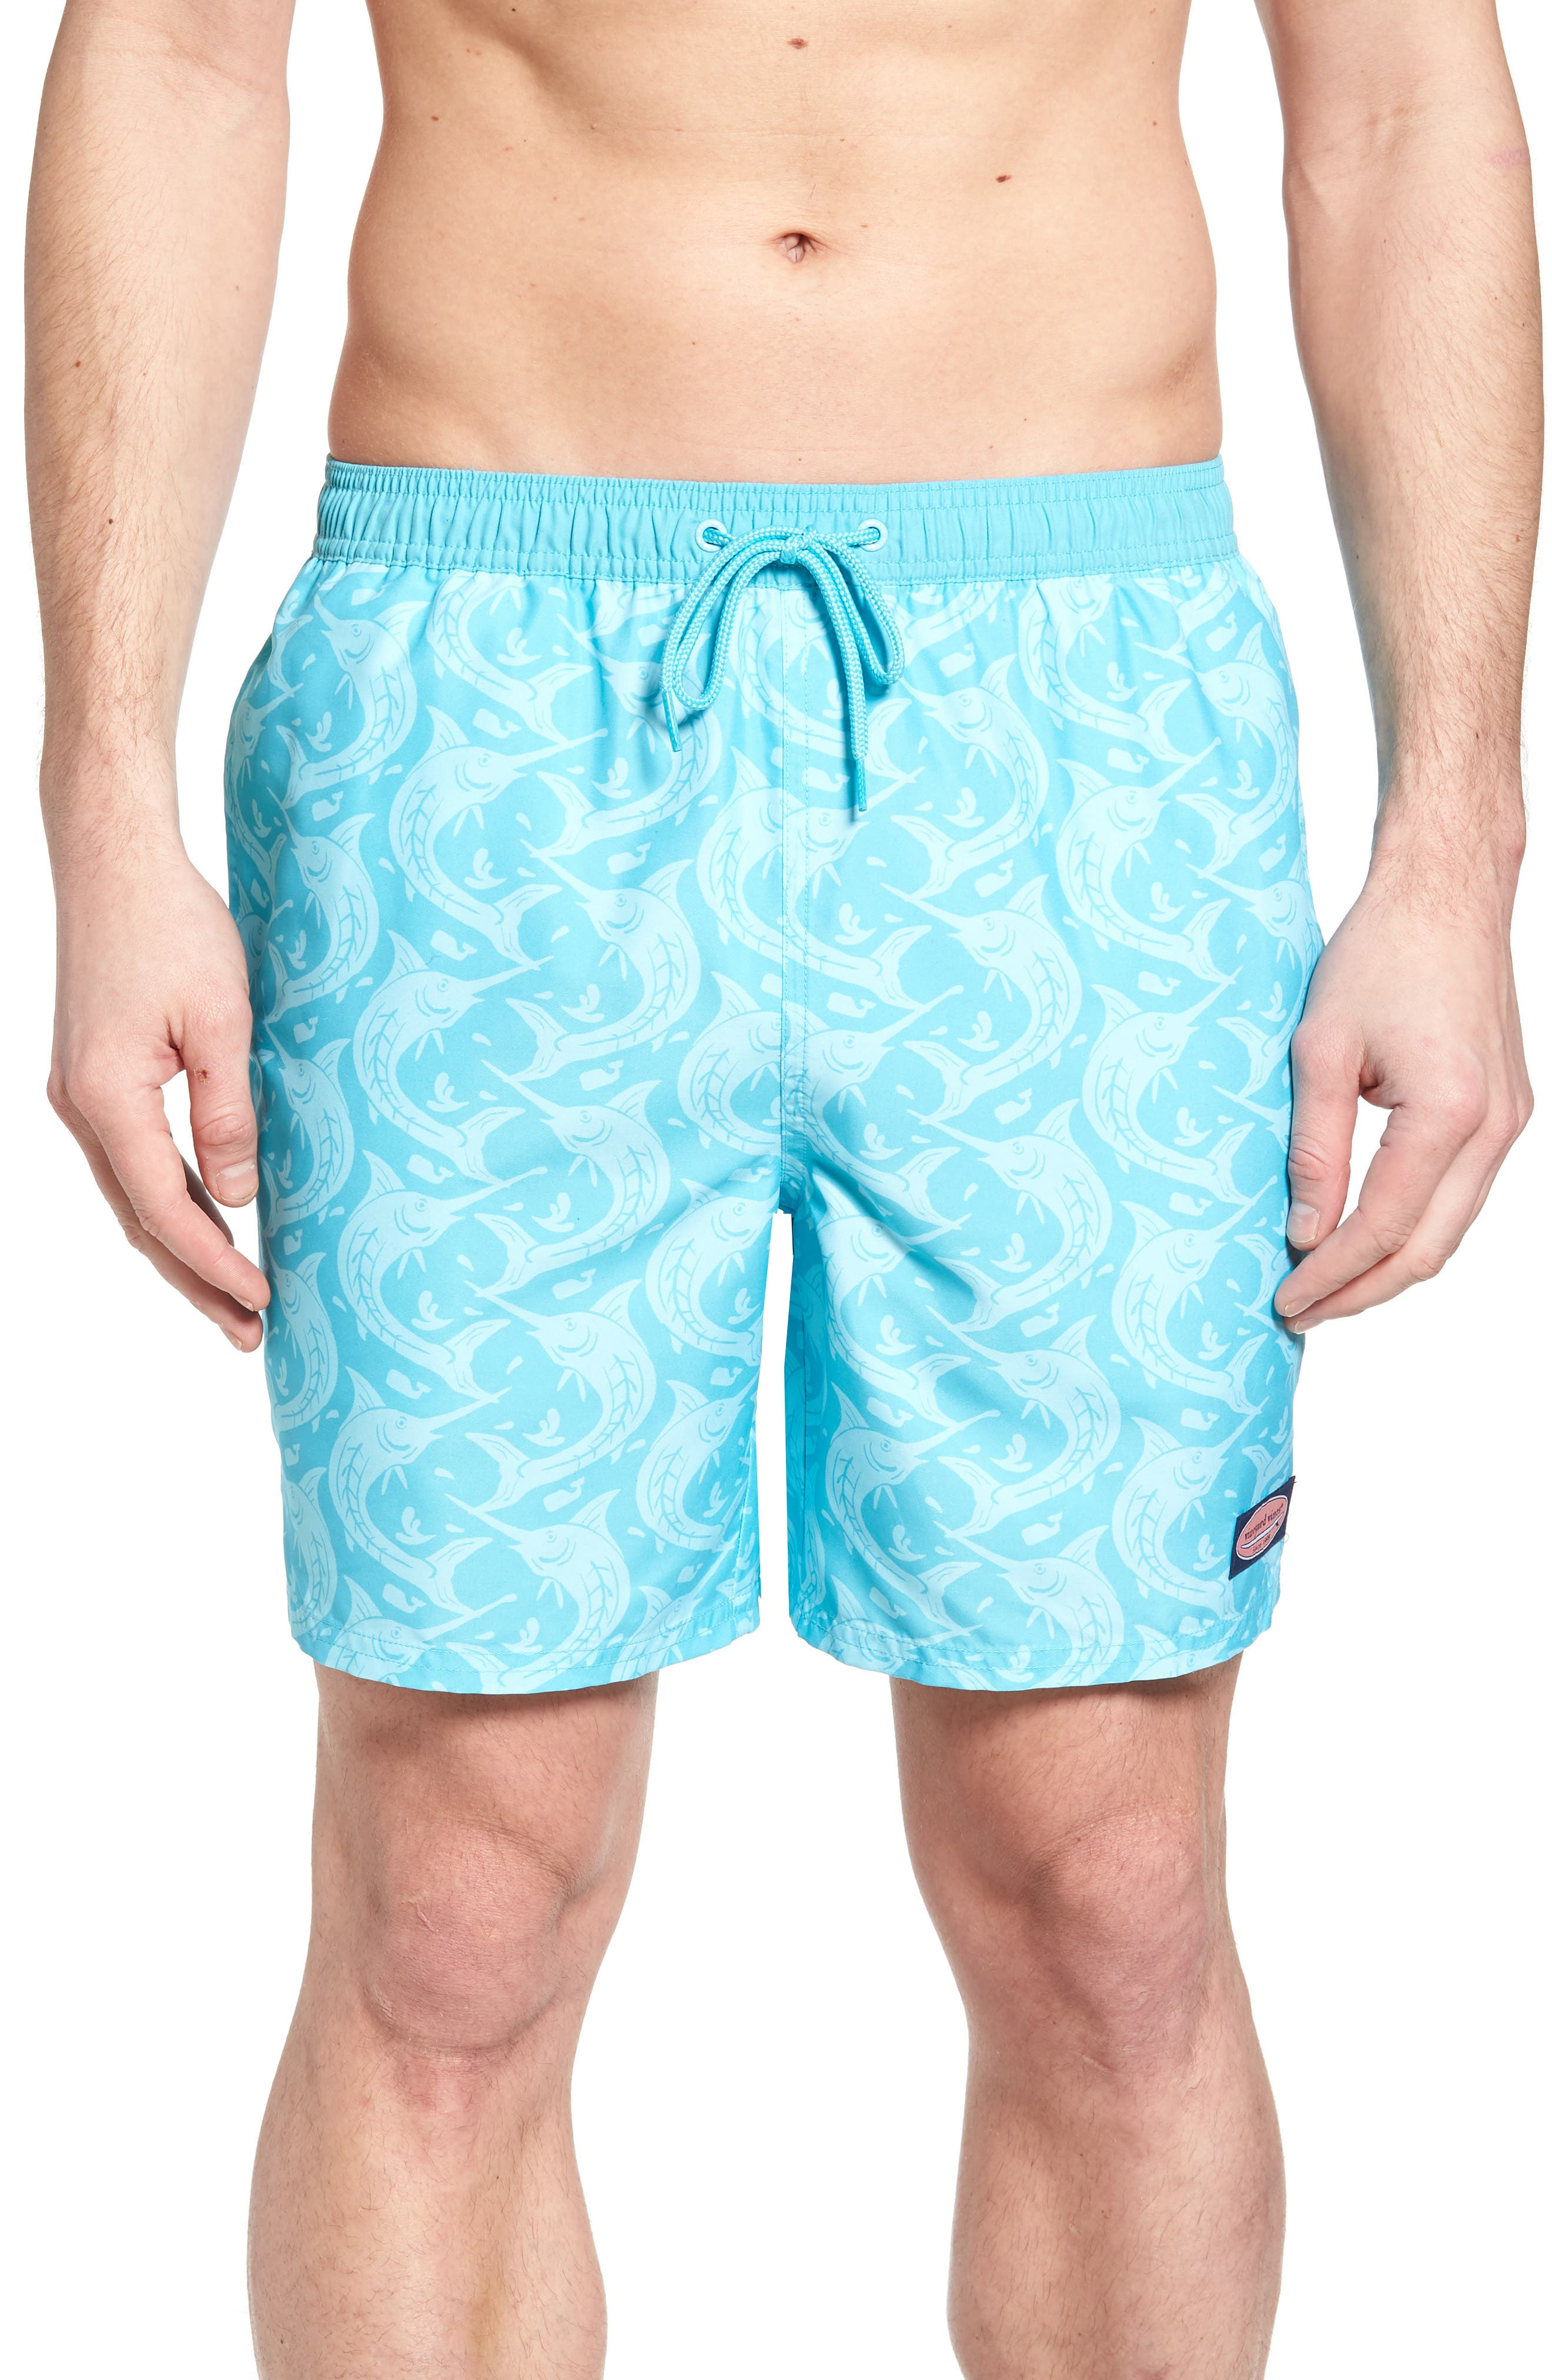 Marlin Out of Water Chappy Swim Trunks,                         Main,                         color, 459